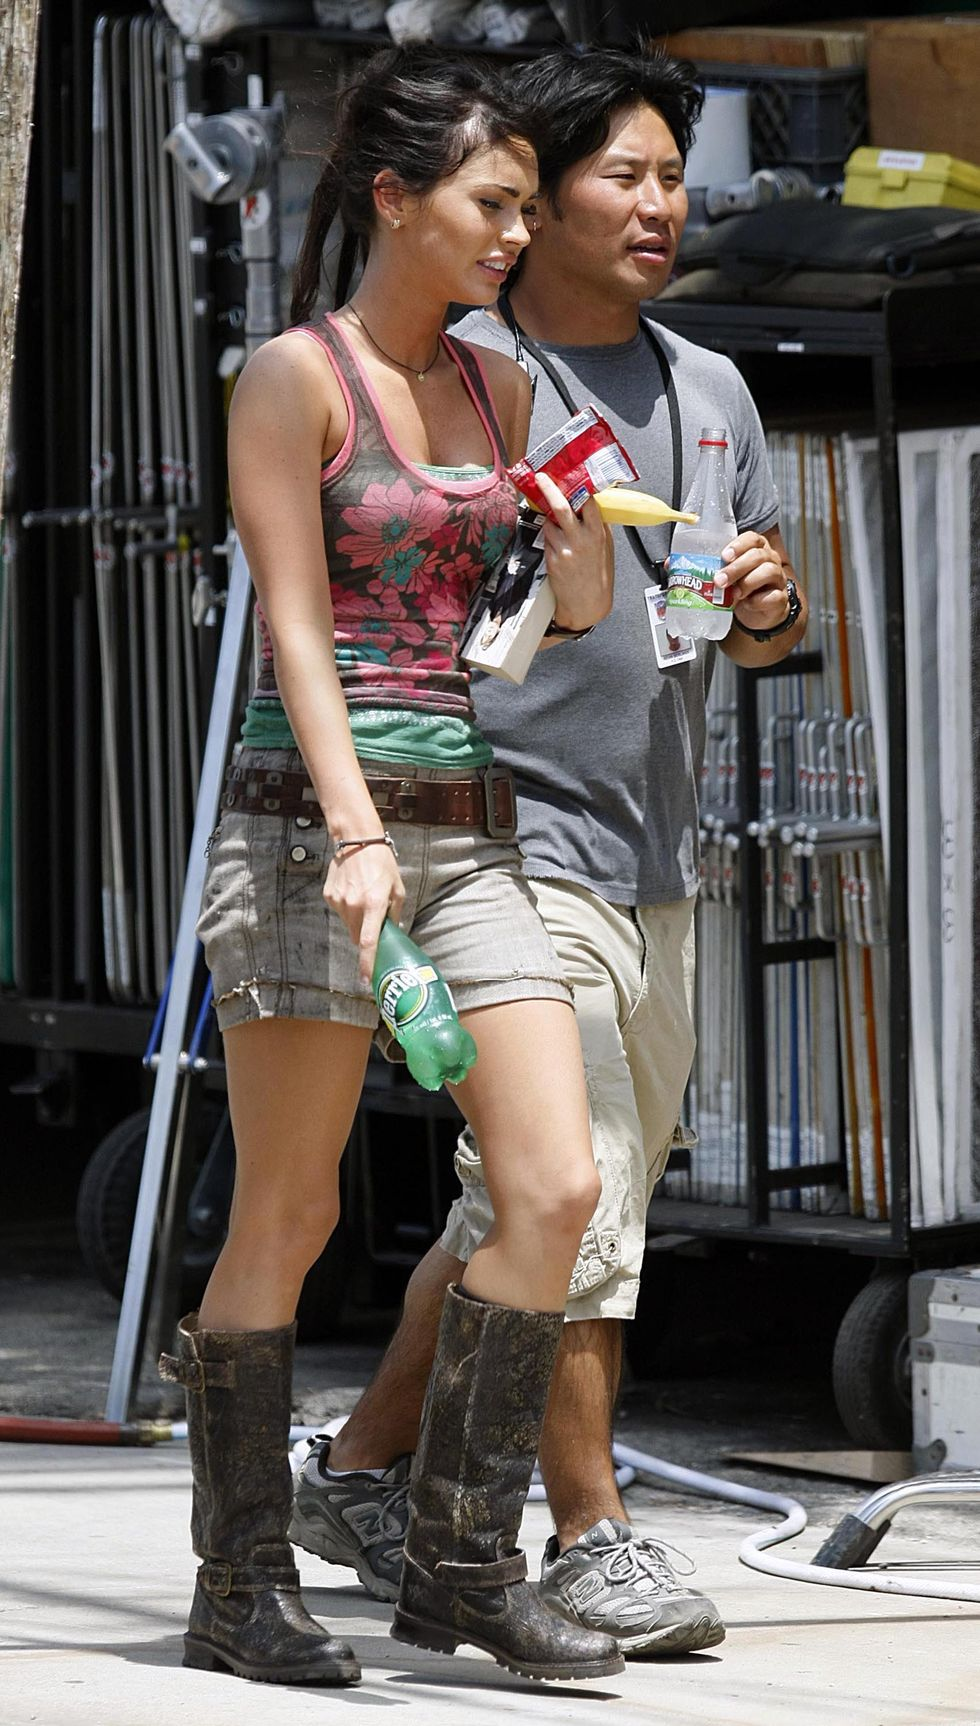 megan-fox-on-the-set-of-transformers-in-venice-beach-01